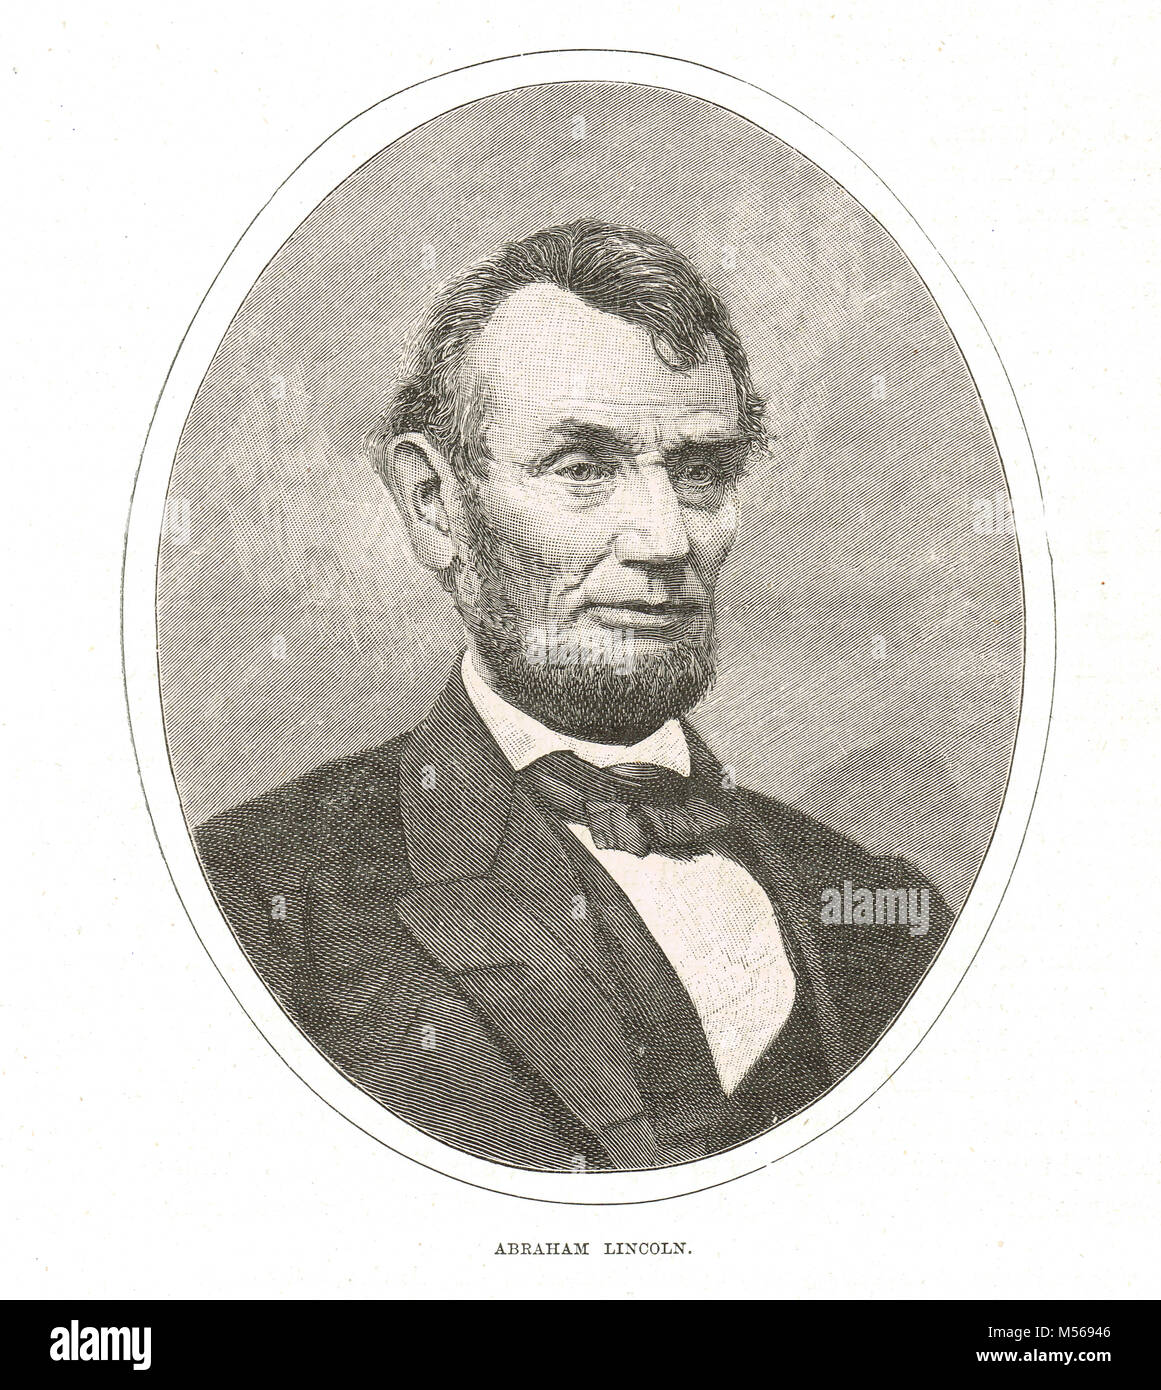 abraham lincoln civil war president essay Abraham lincoln and emancipation the emancipation proclamation and thirteenth amendment brought about by the civil war were important milestones in the long process of ending legal slavery in the united states.